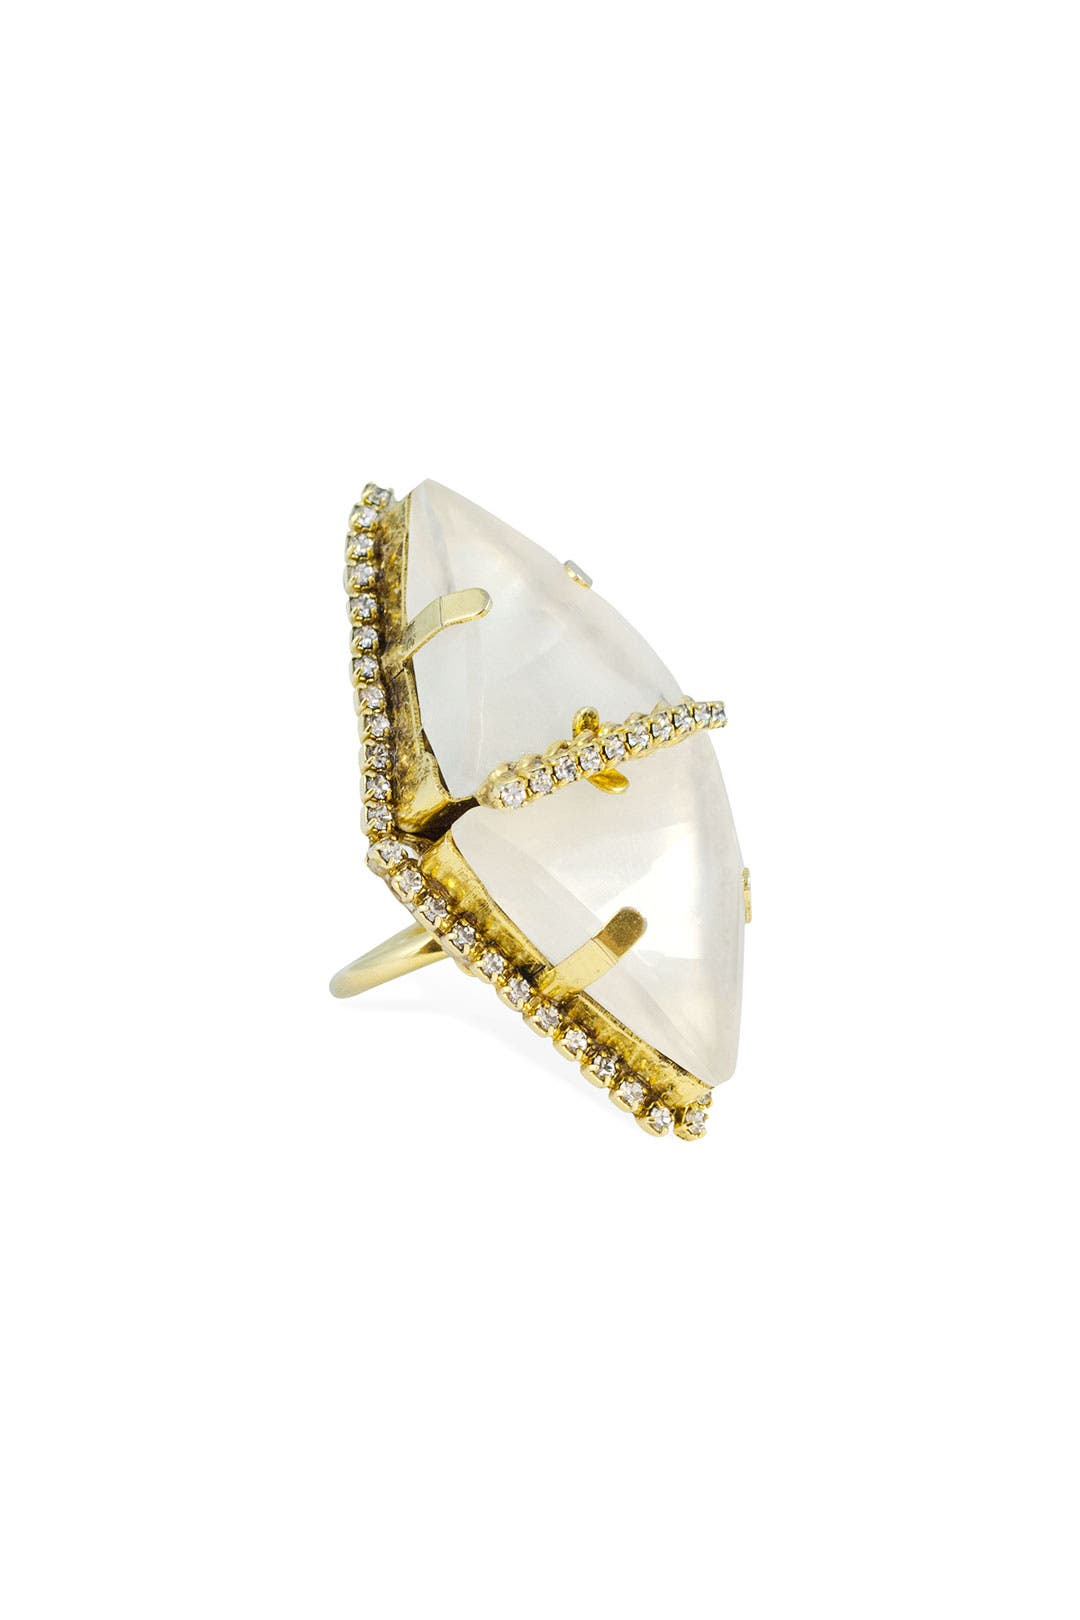 Whiter Shade of Pale Ring by Erickson Beamon